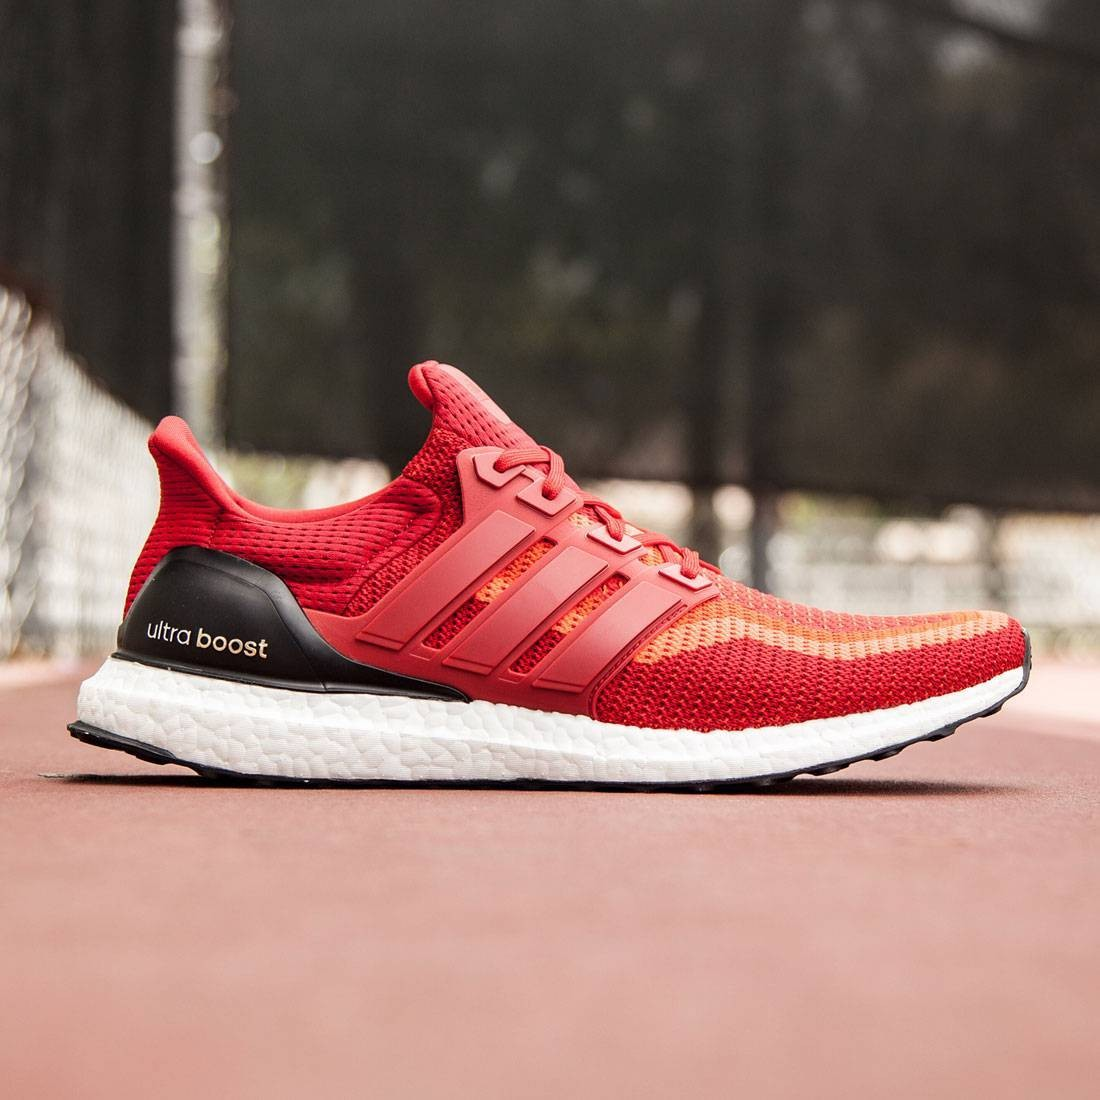 a57623a85c4 Adidas Men Ultra Boost red solar red power red core black